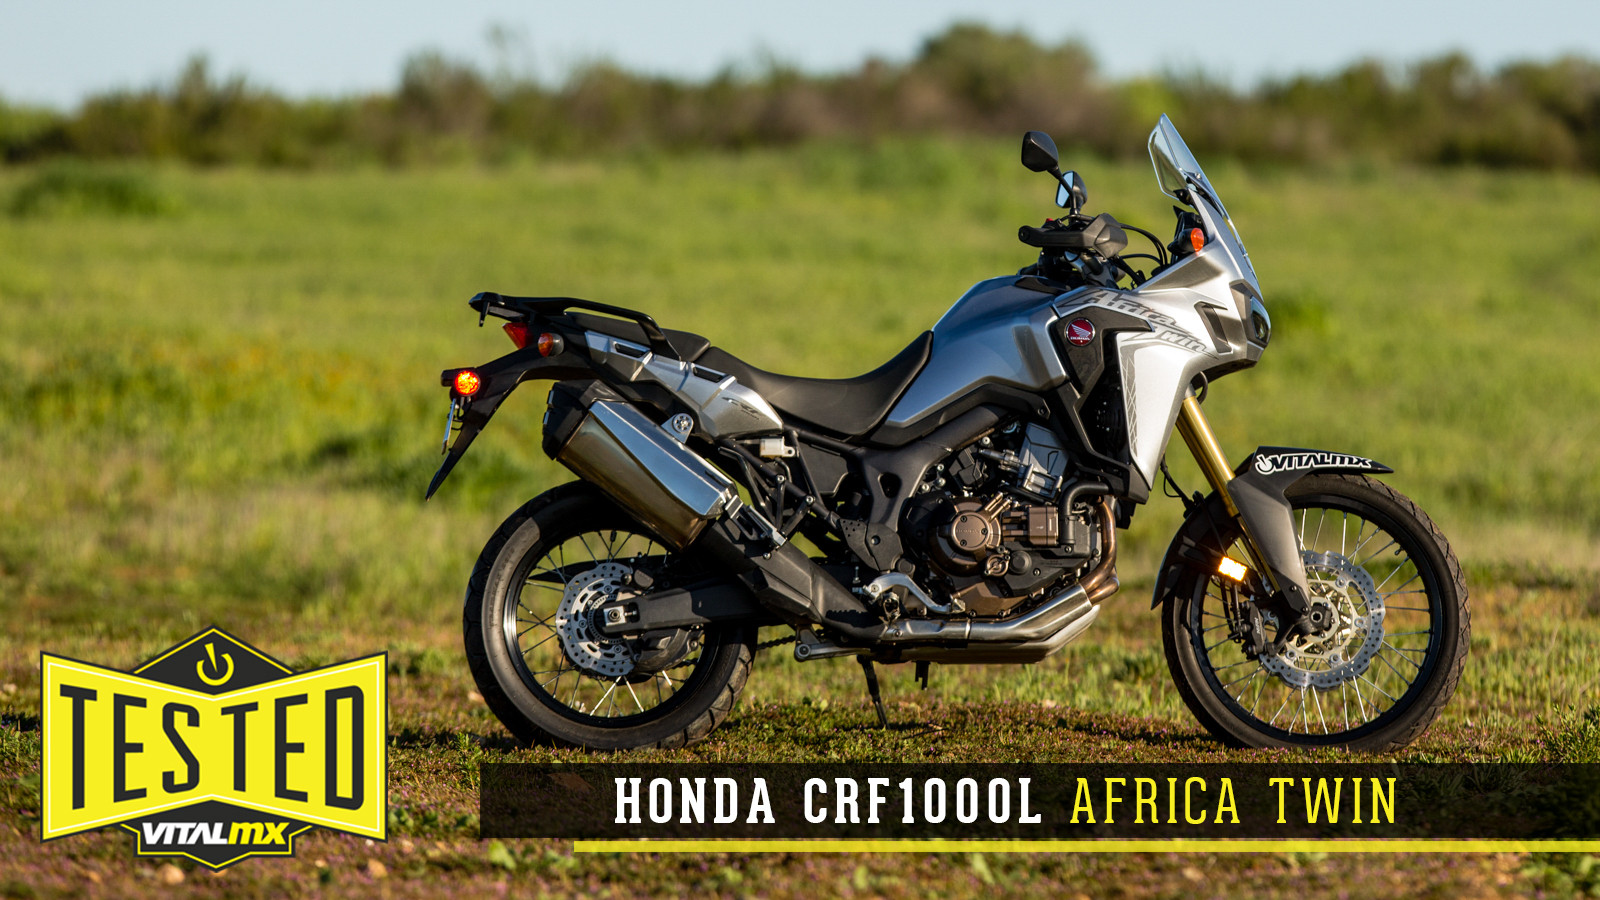 Tested: Honda CRF1000L Africa Twin